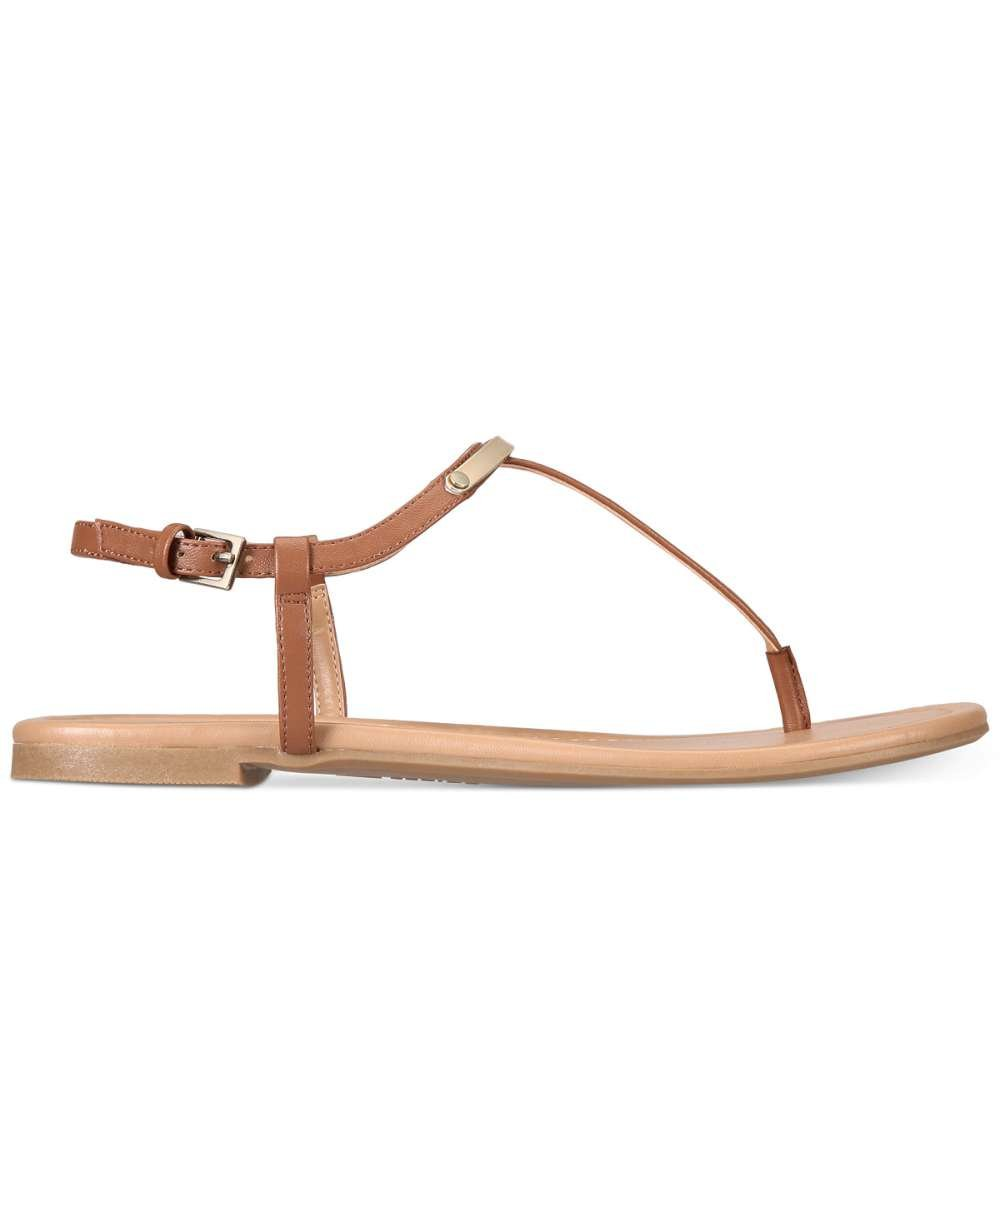 Call It Spring Womens Aareniel Open Toe Casual T-Strap Sandals, Cognac, Size 5.0